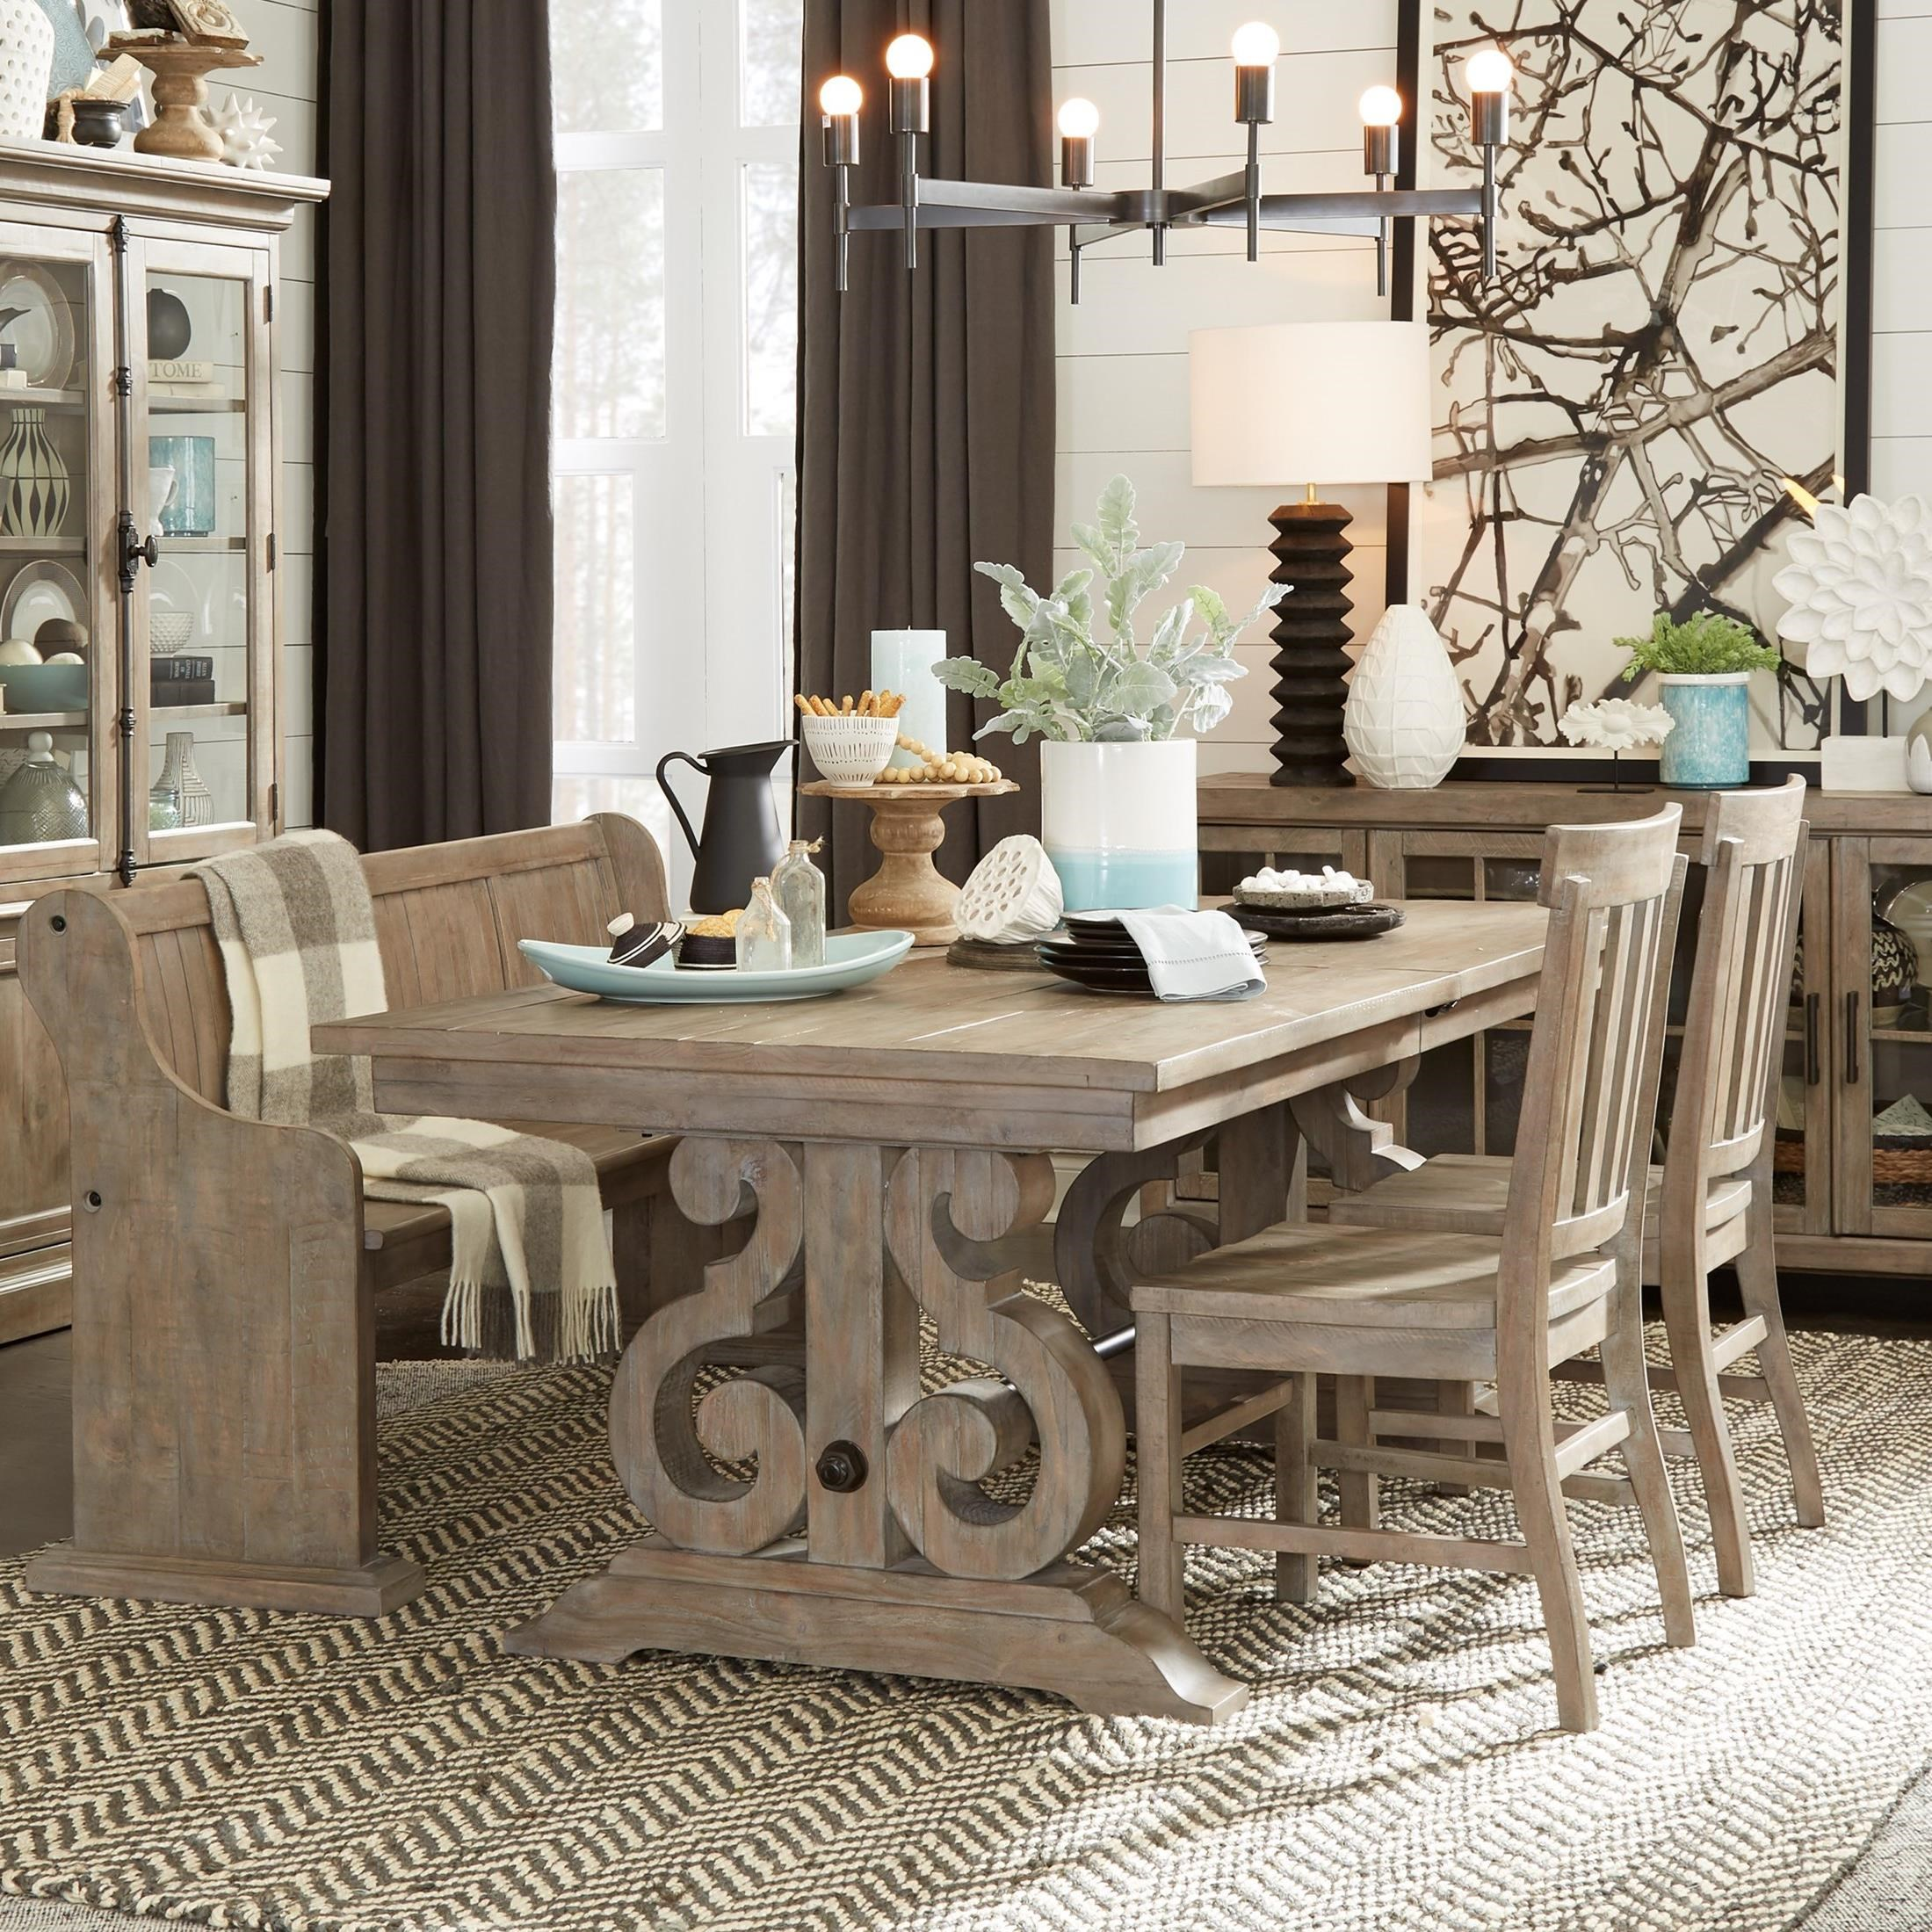 Tinley Park 6 Piece Table & Chair Set with Bench by Magnussen Home at Baer's Furniture